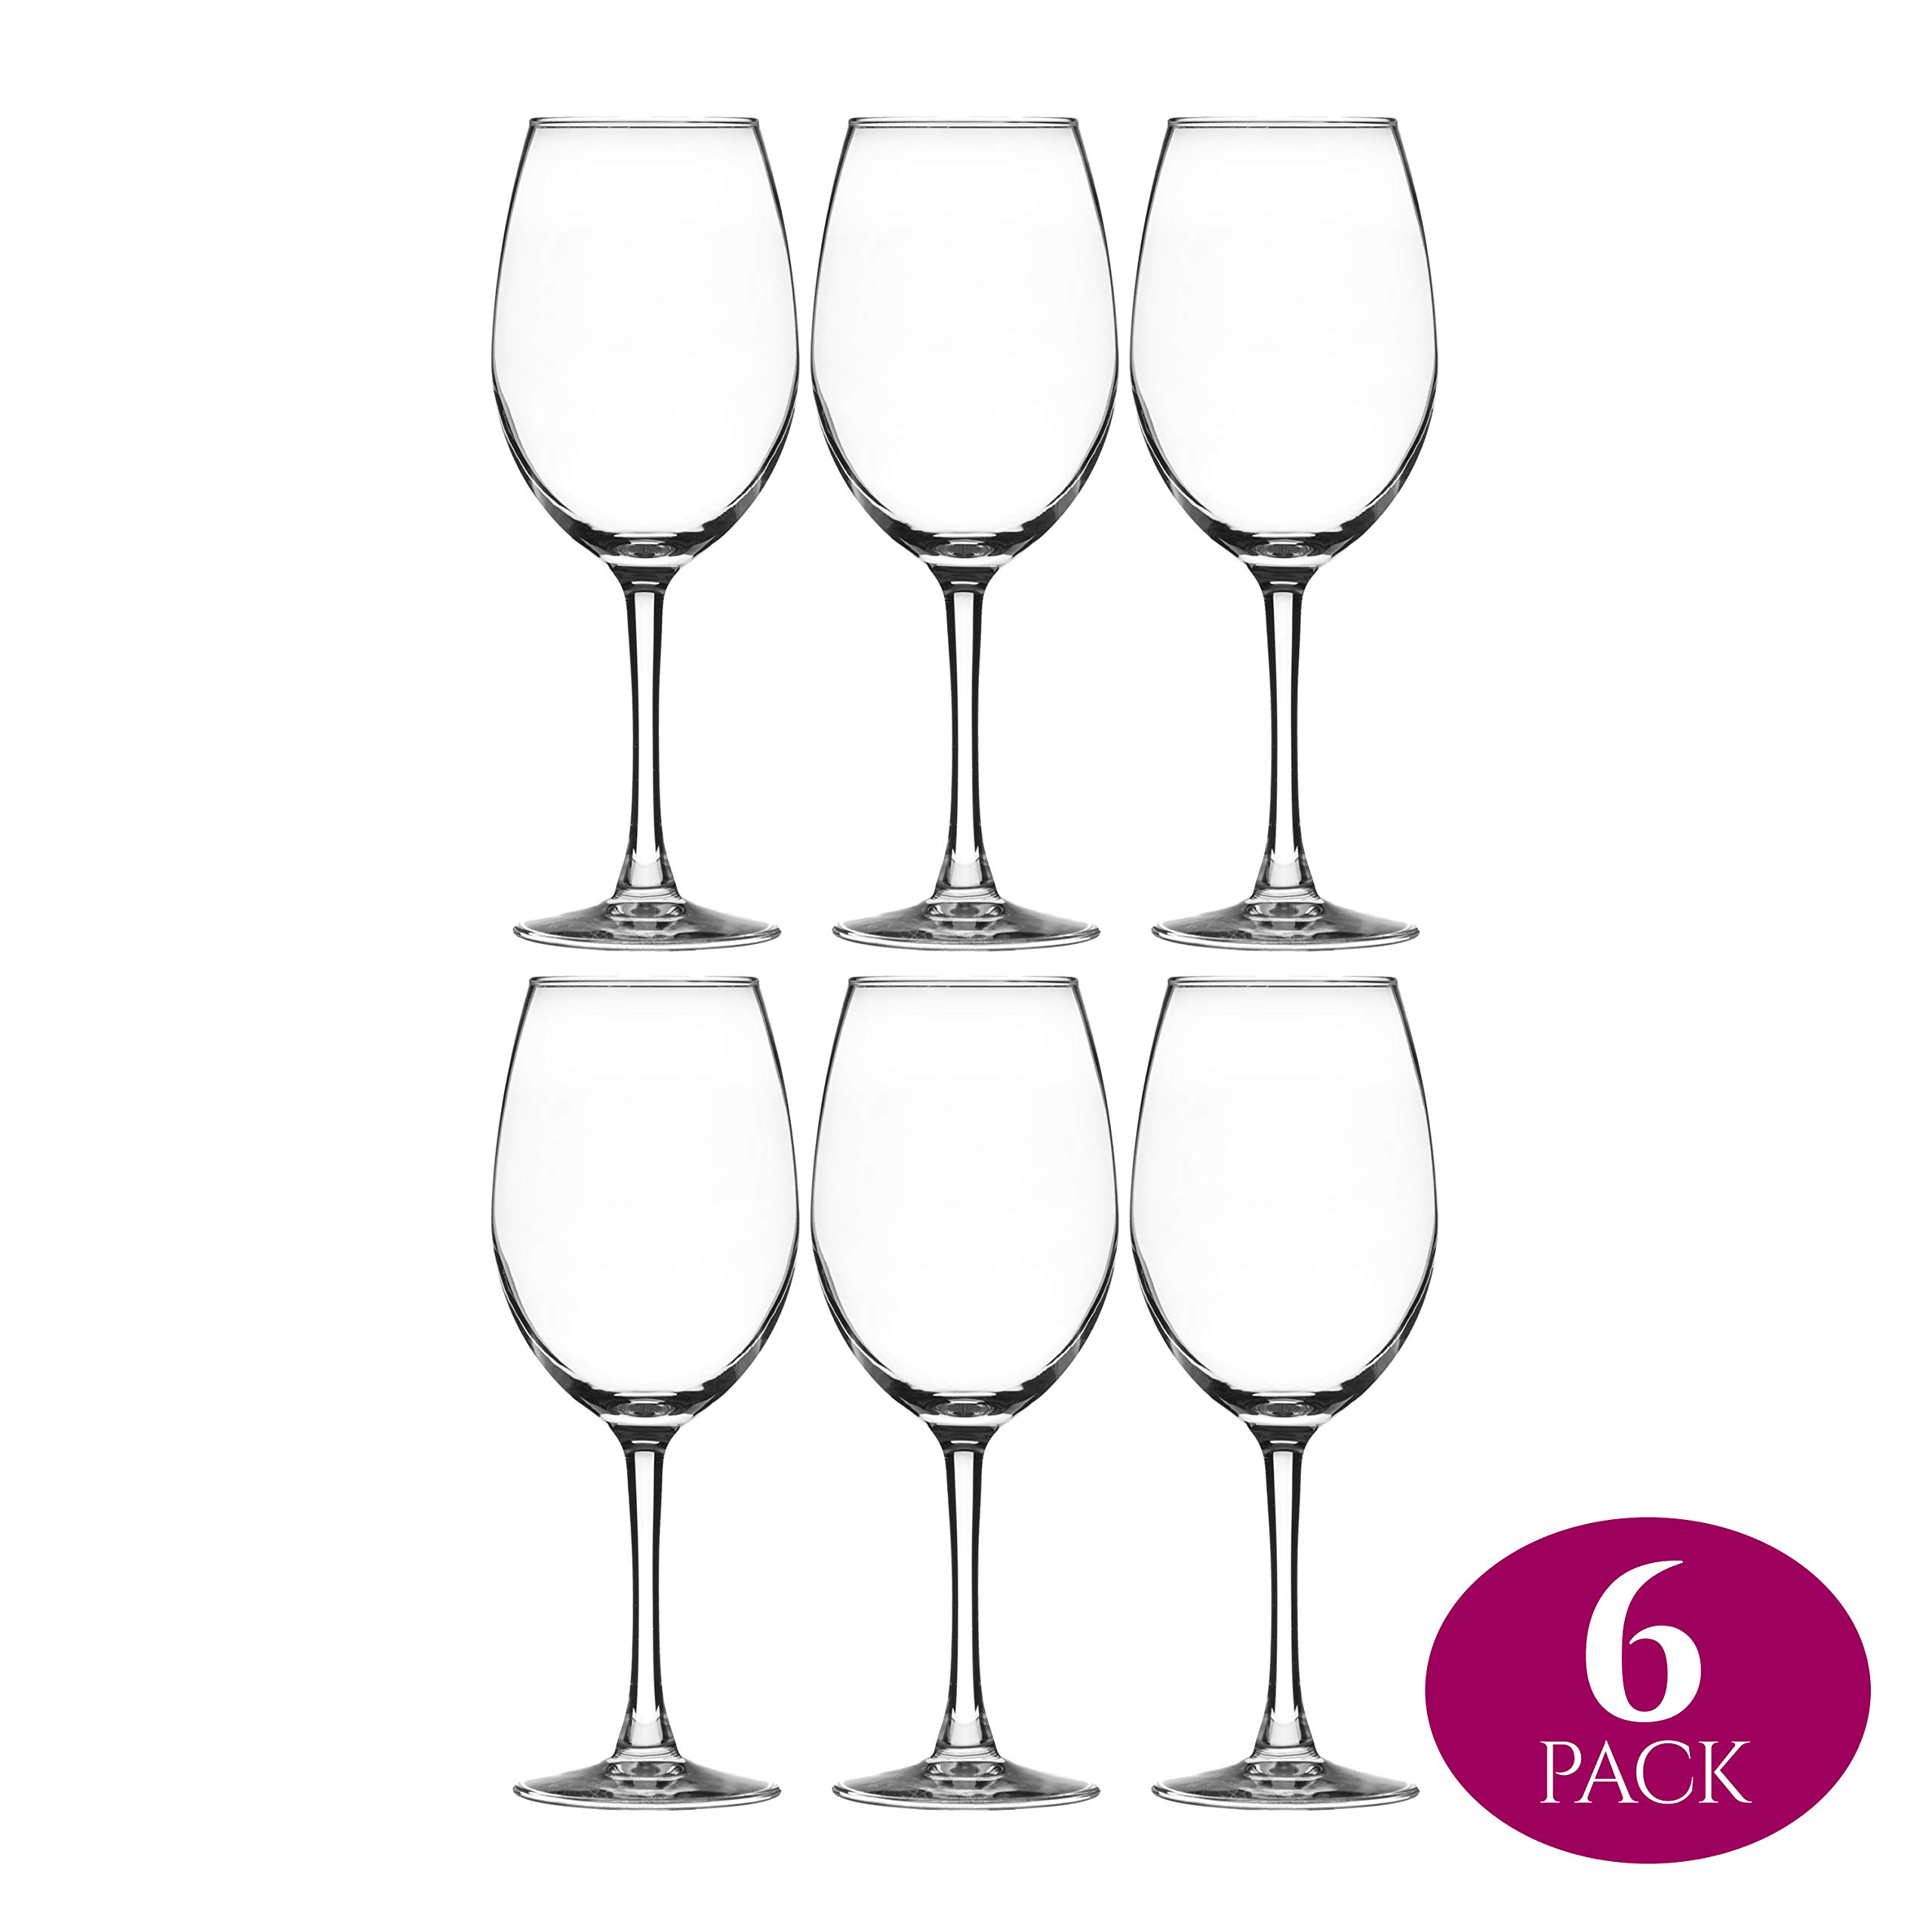 Element Drinkware Stemmed Wine Glass 16 Ounce | Crystal Clear Classic Design - Perfect for Red Wines & White Wines at Your Next Elegant Dinner Party or Event - Elongated Bowl Design Snifter - Set of 6 by Element Drinkware